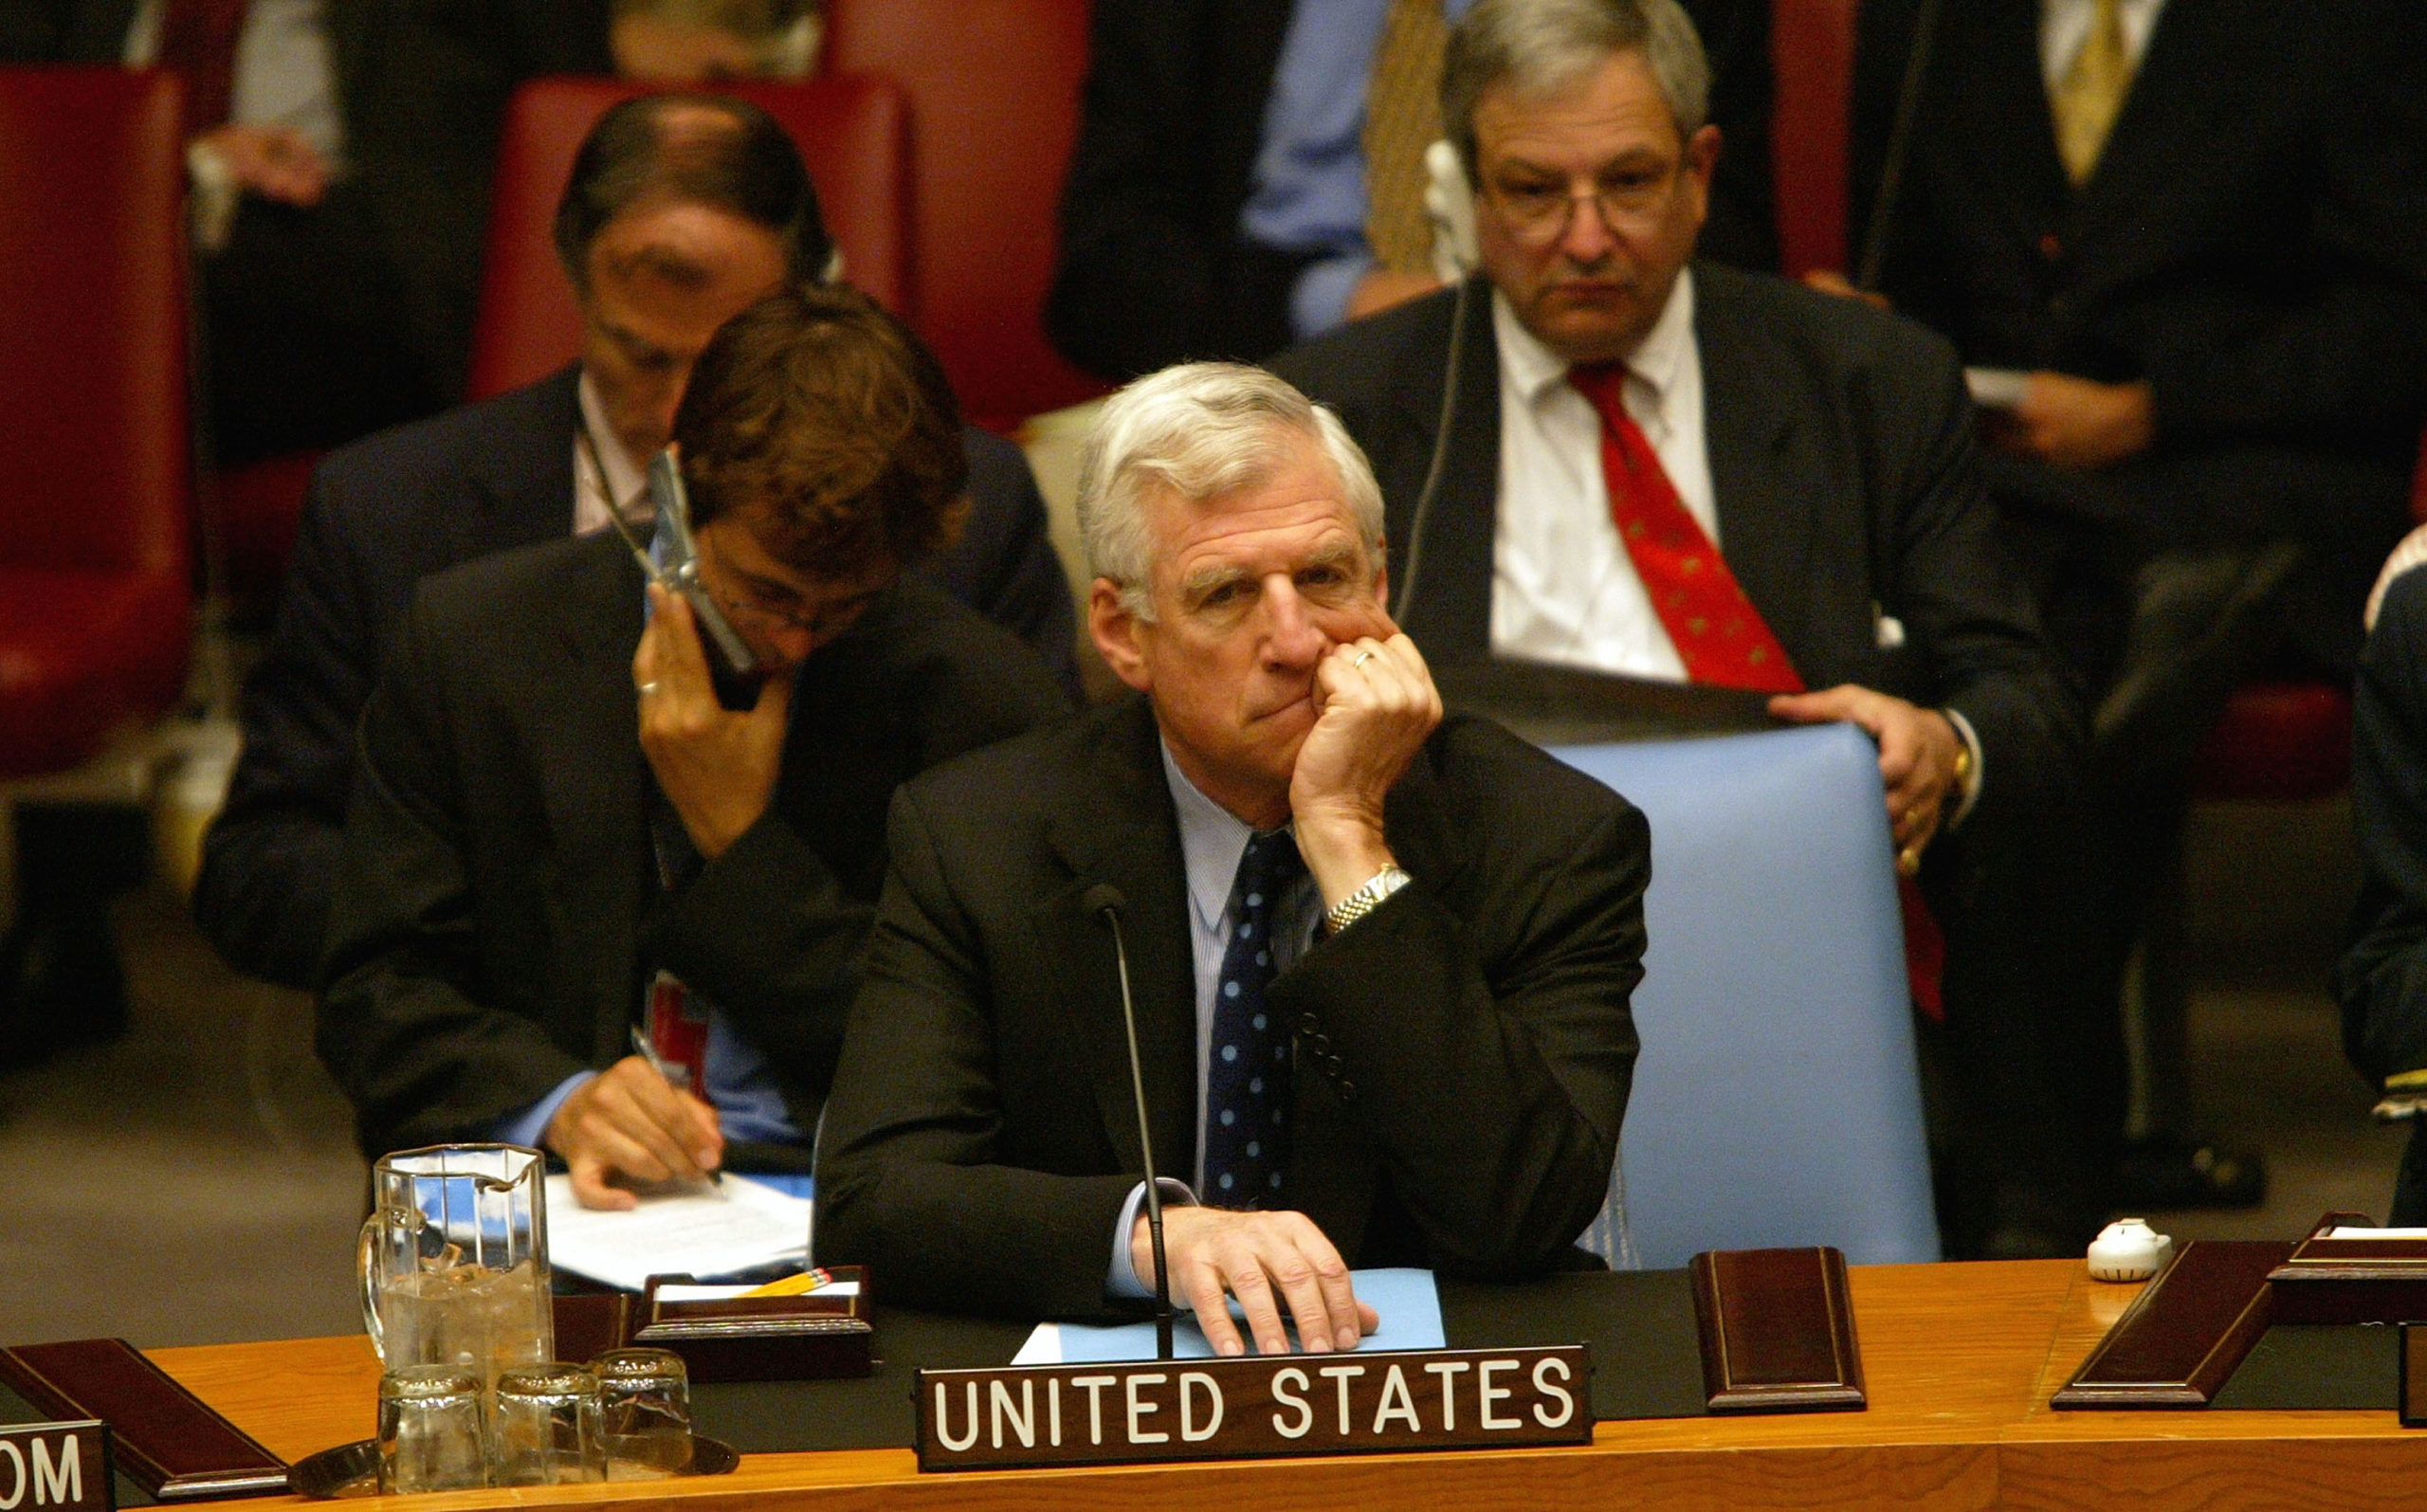 NEW YORK - JULY 13: Newly appointed U.S. Ambassador to the United Nations John C. Danforth, 67, listens to a Security Council meeting on the Middle East July 13, 2004 at the United Nations in New York City. Danforth, the former senator from Missouri, was sworn in earlier in the month by Supreme Court Justice Clarence Thomas. (Photo by Spencer Platt/Getty Images)